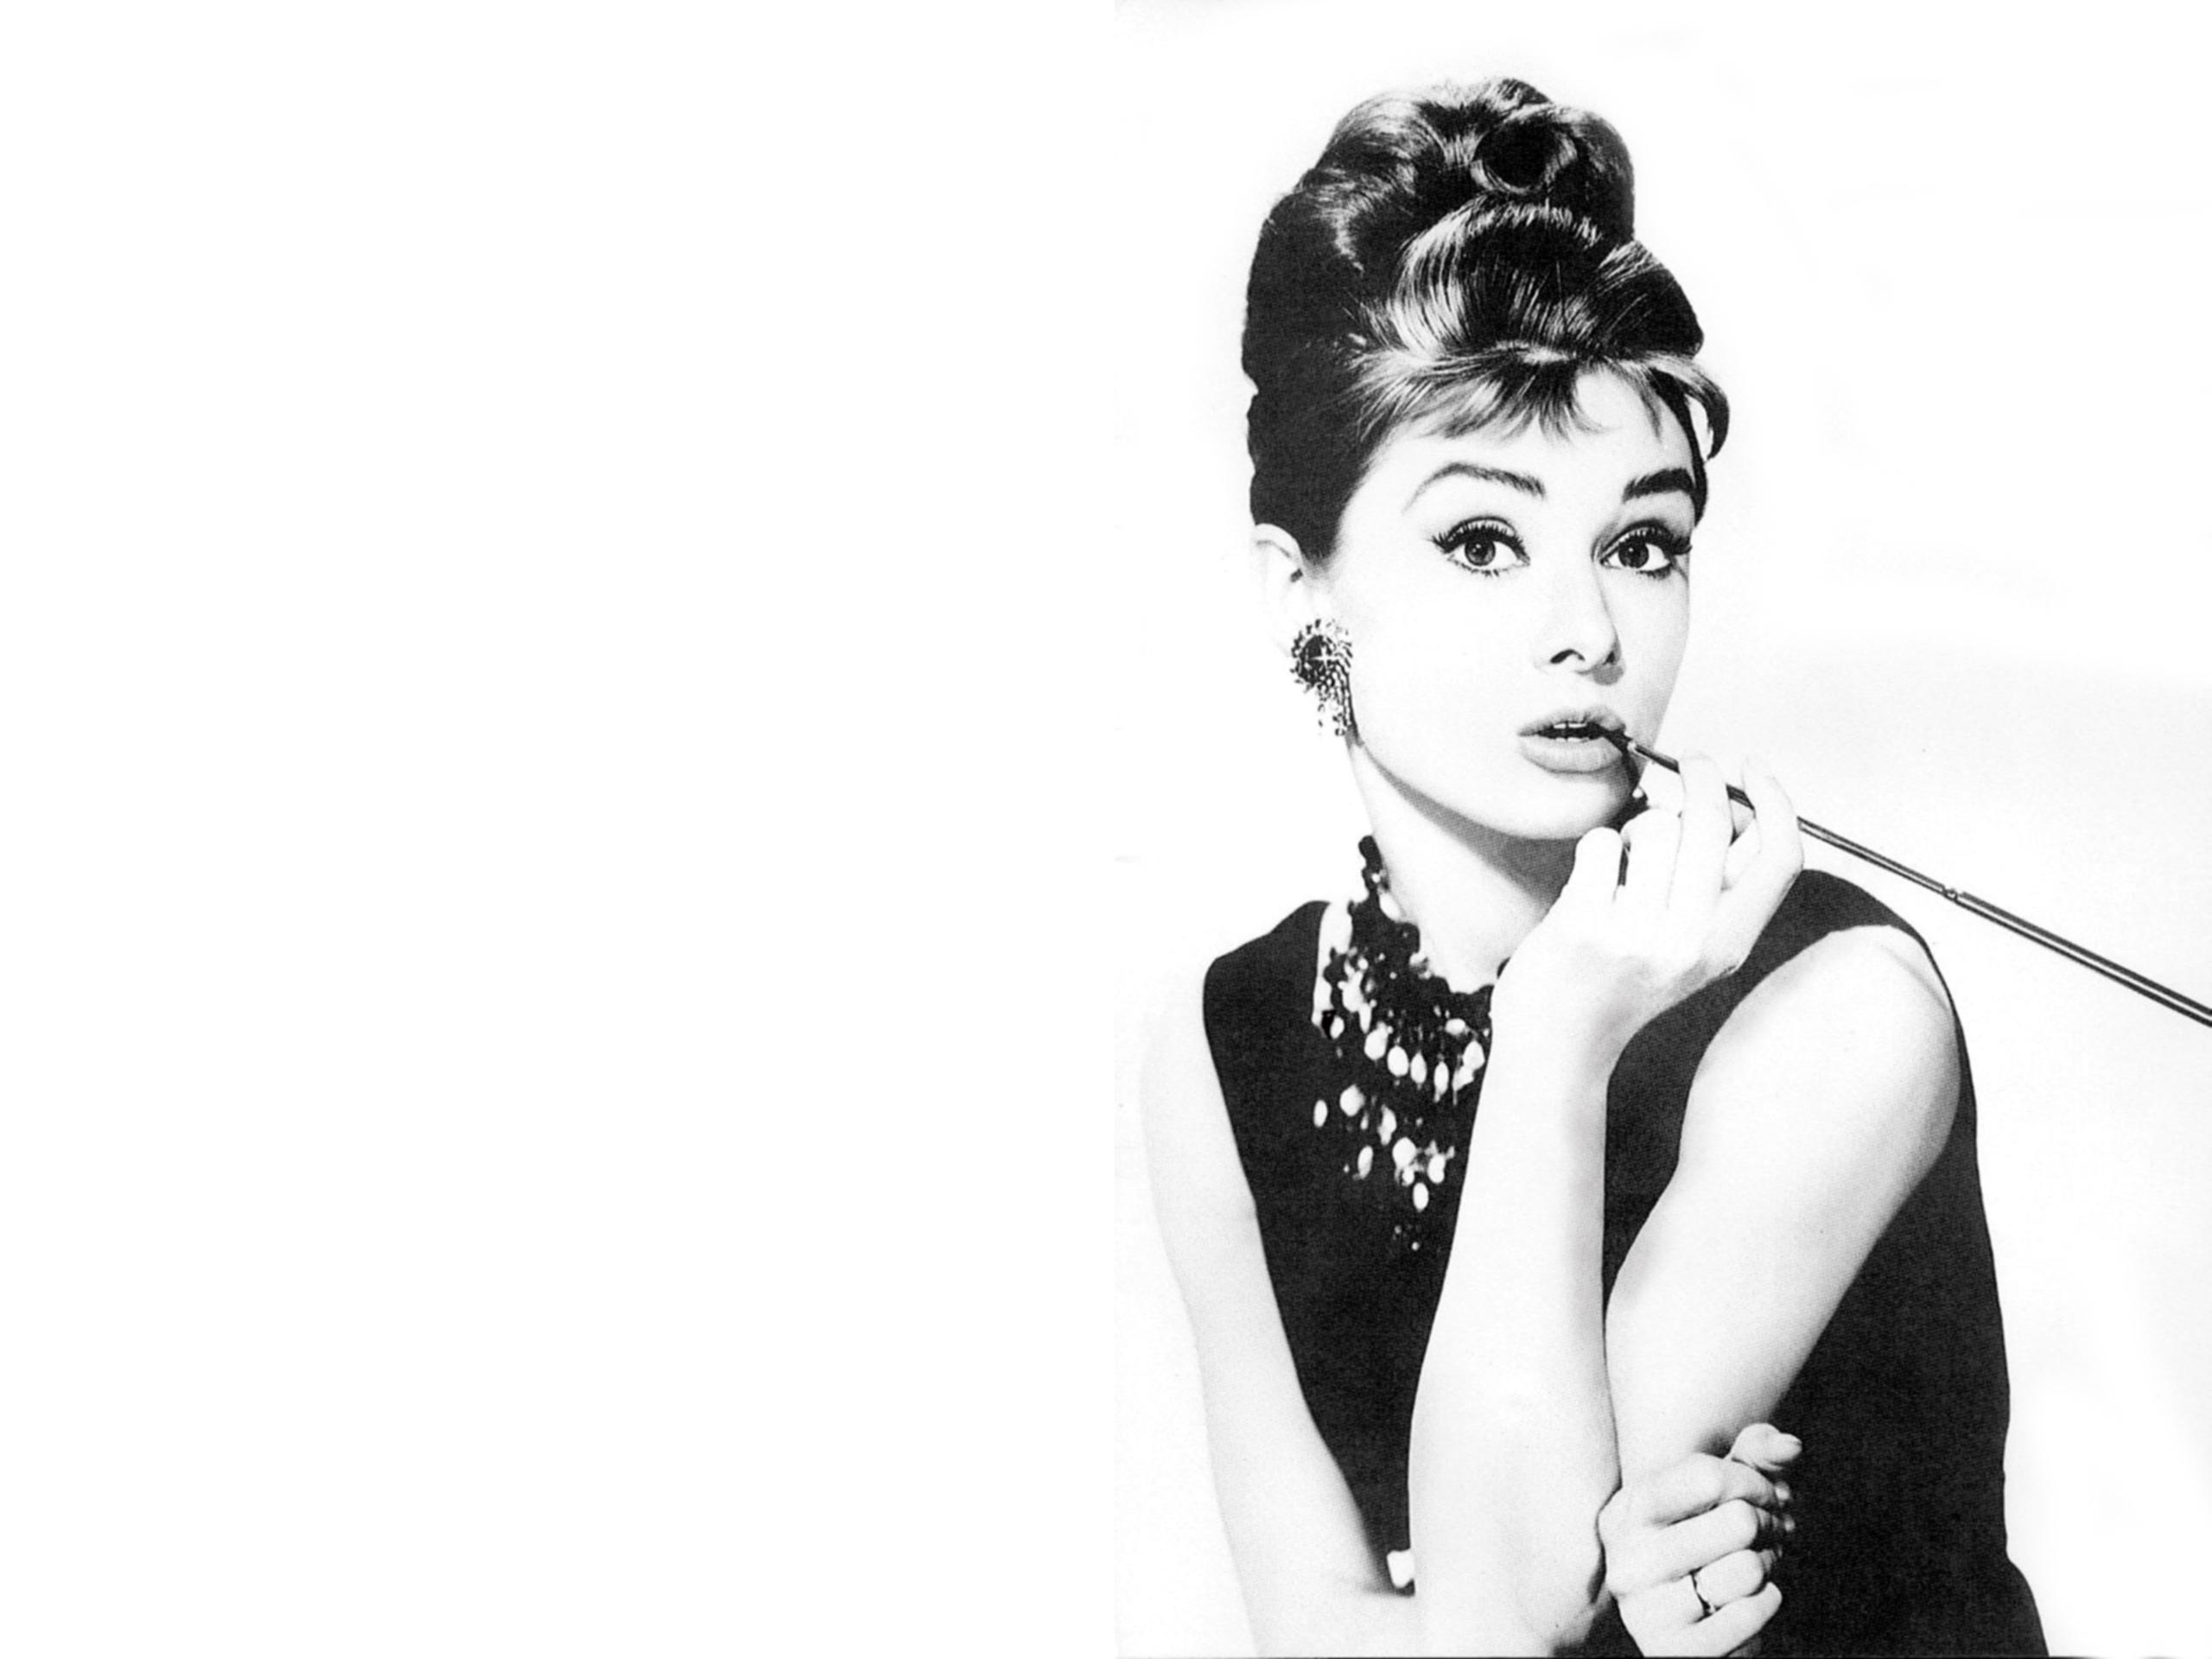 Audrey Hepburn Wallpapers High Resolution and Quality Download